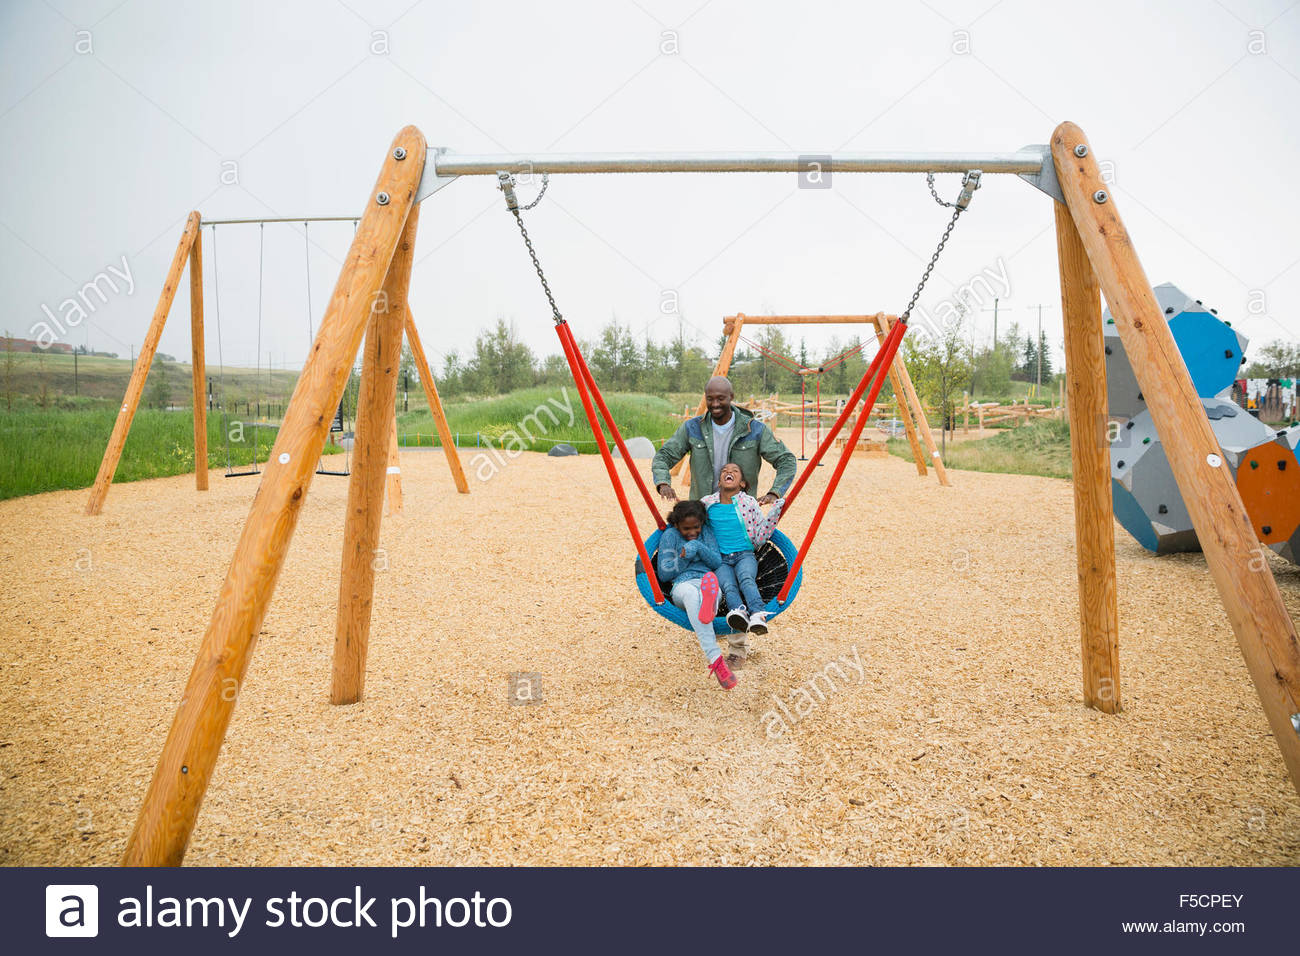 Father pushing daughters in swing net at playground - Stock Image